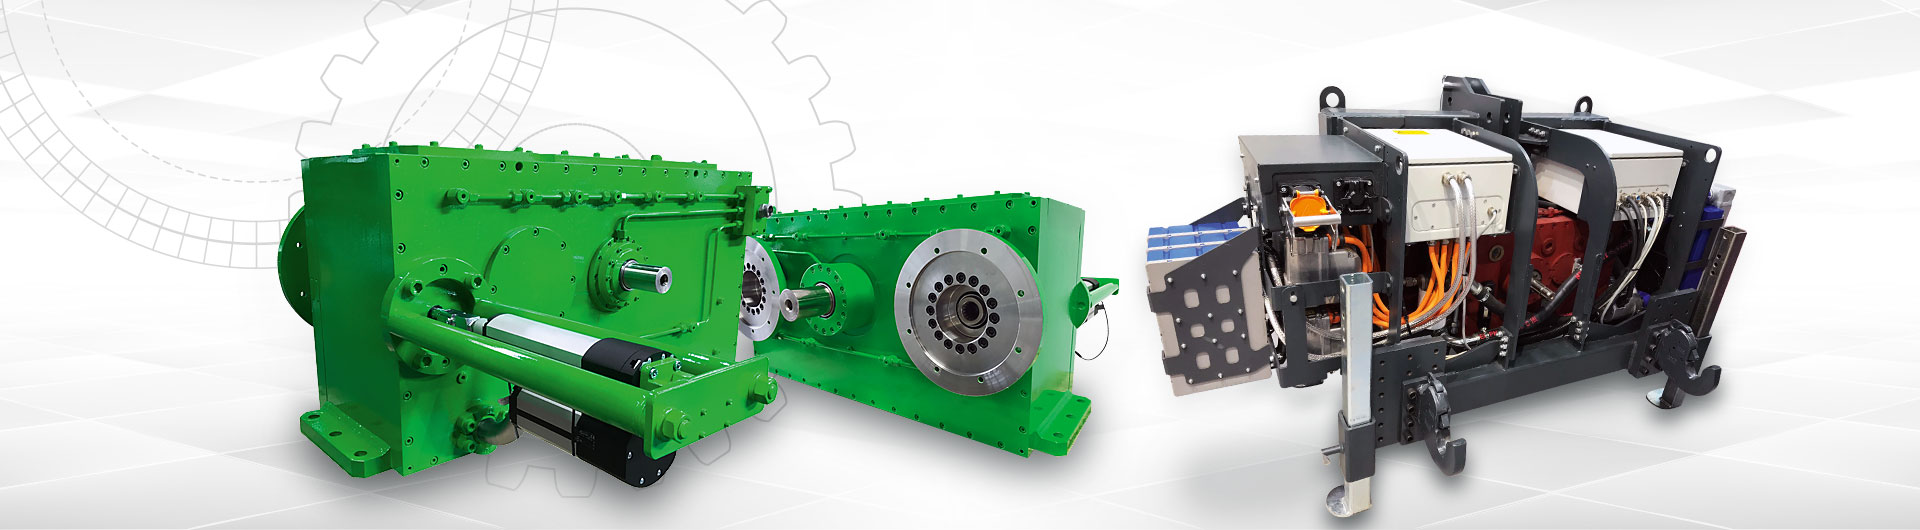 Power Split Gearboxes